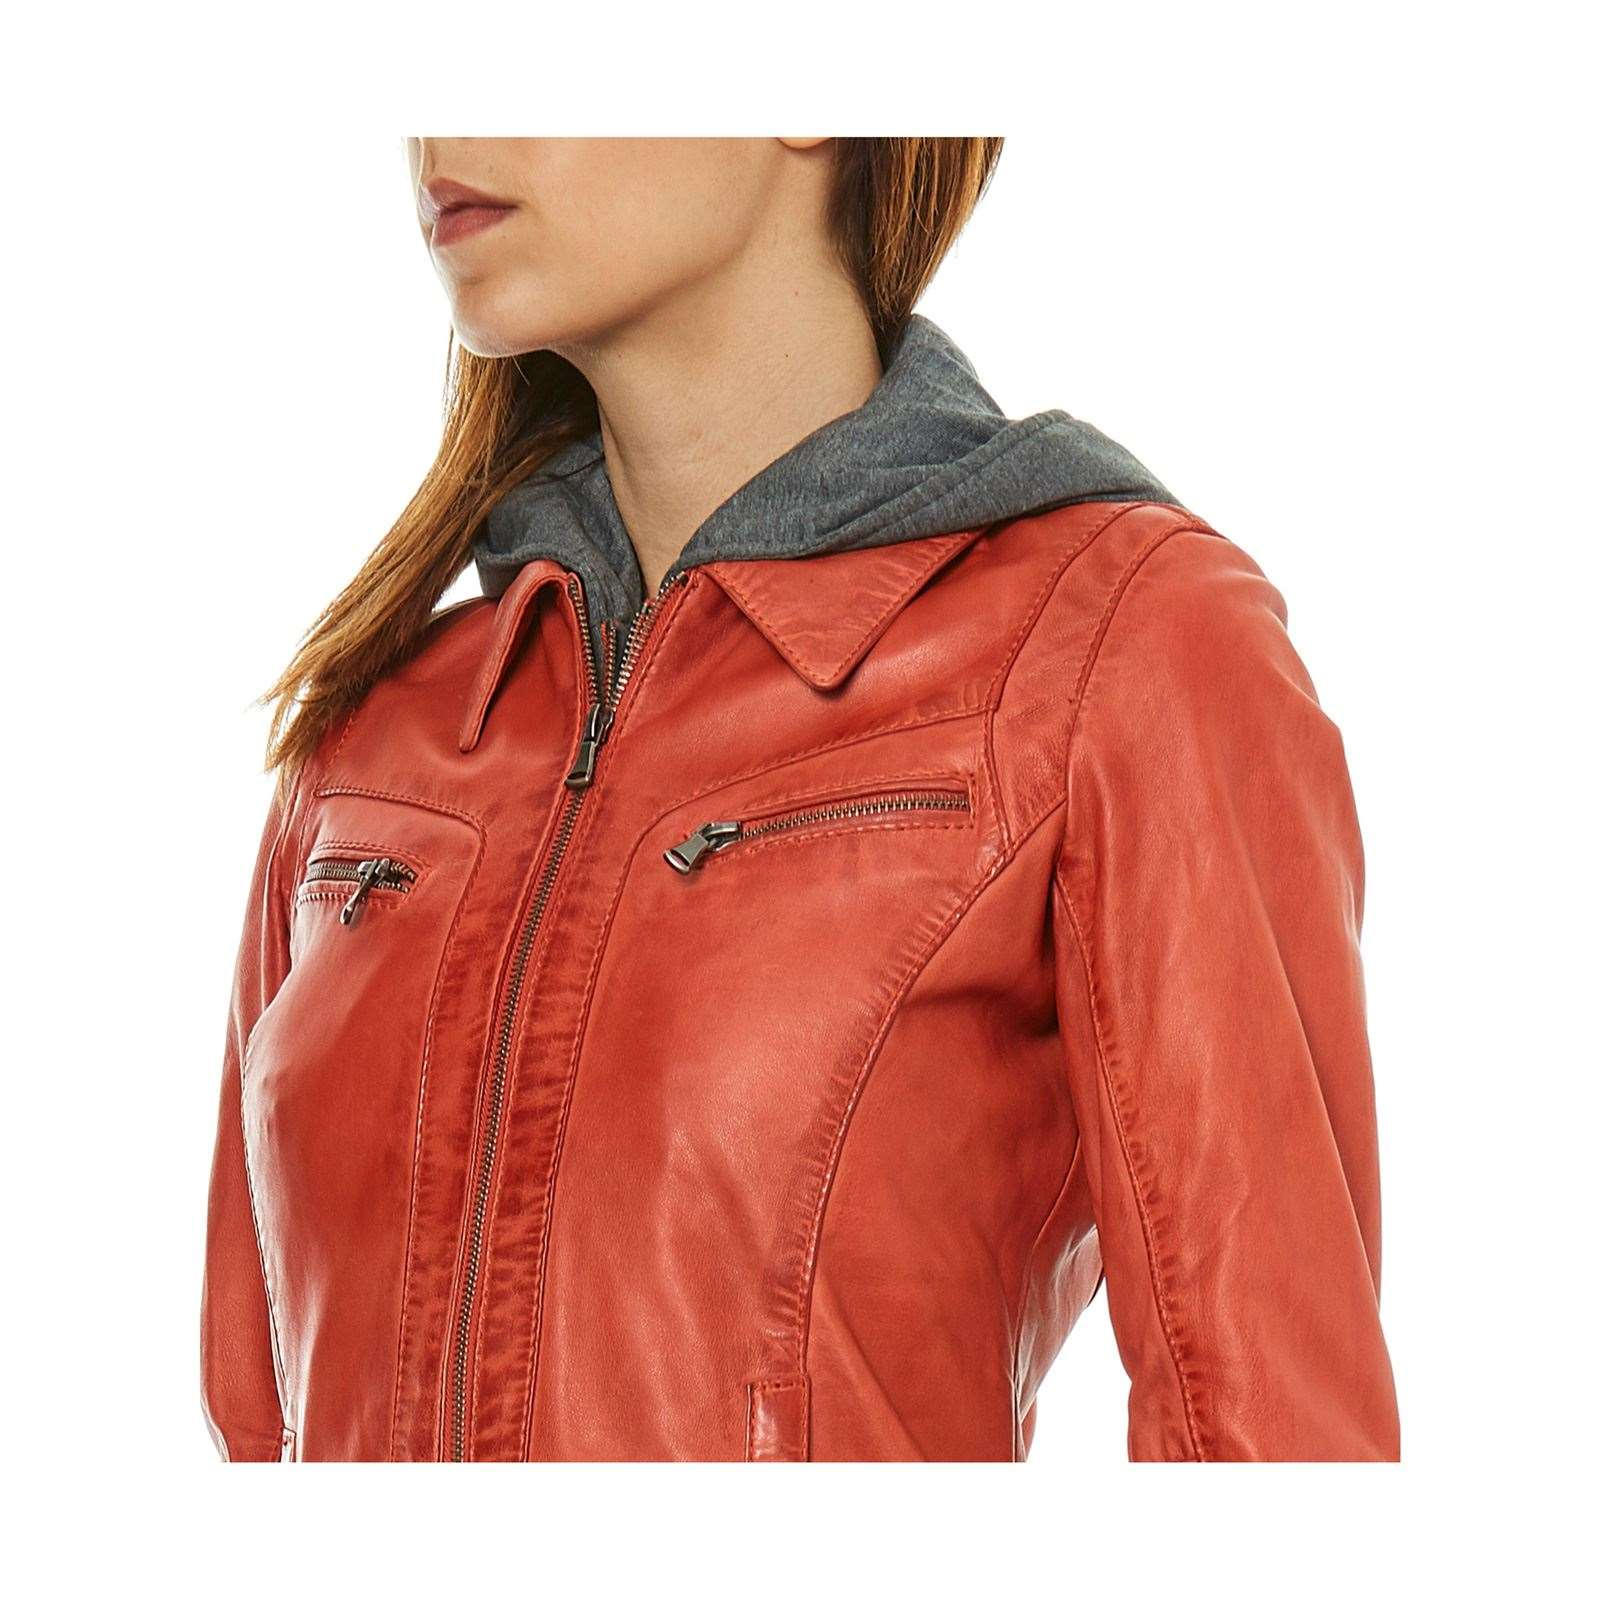 Veste Delicious Brandalley Corail Oakwood Cuir En 5SOnxvFq - jobless ... 762a034023fb